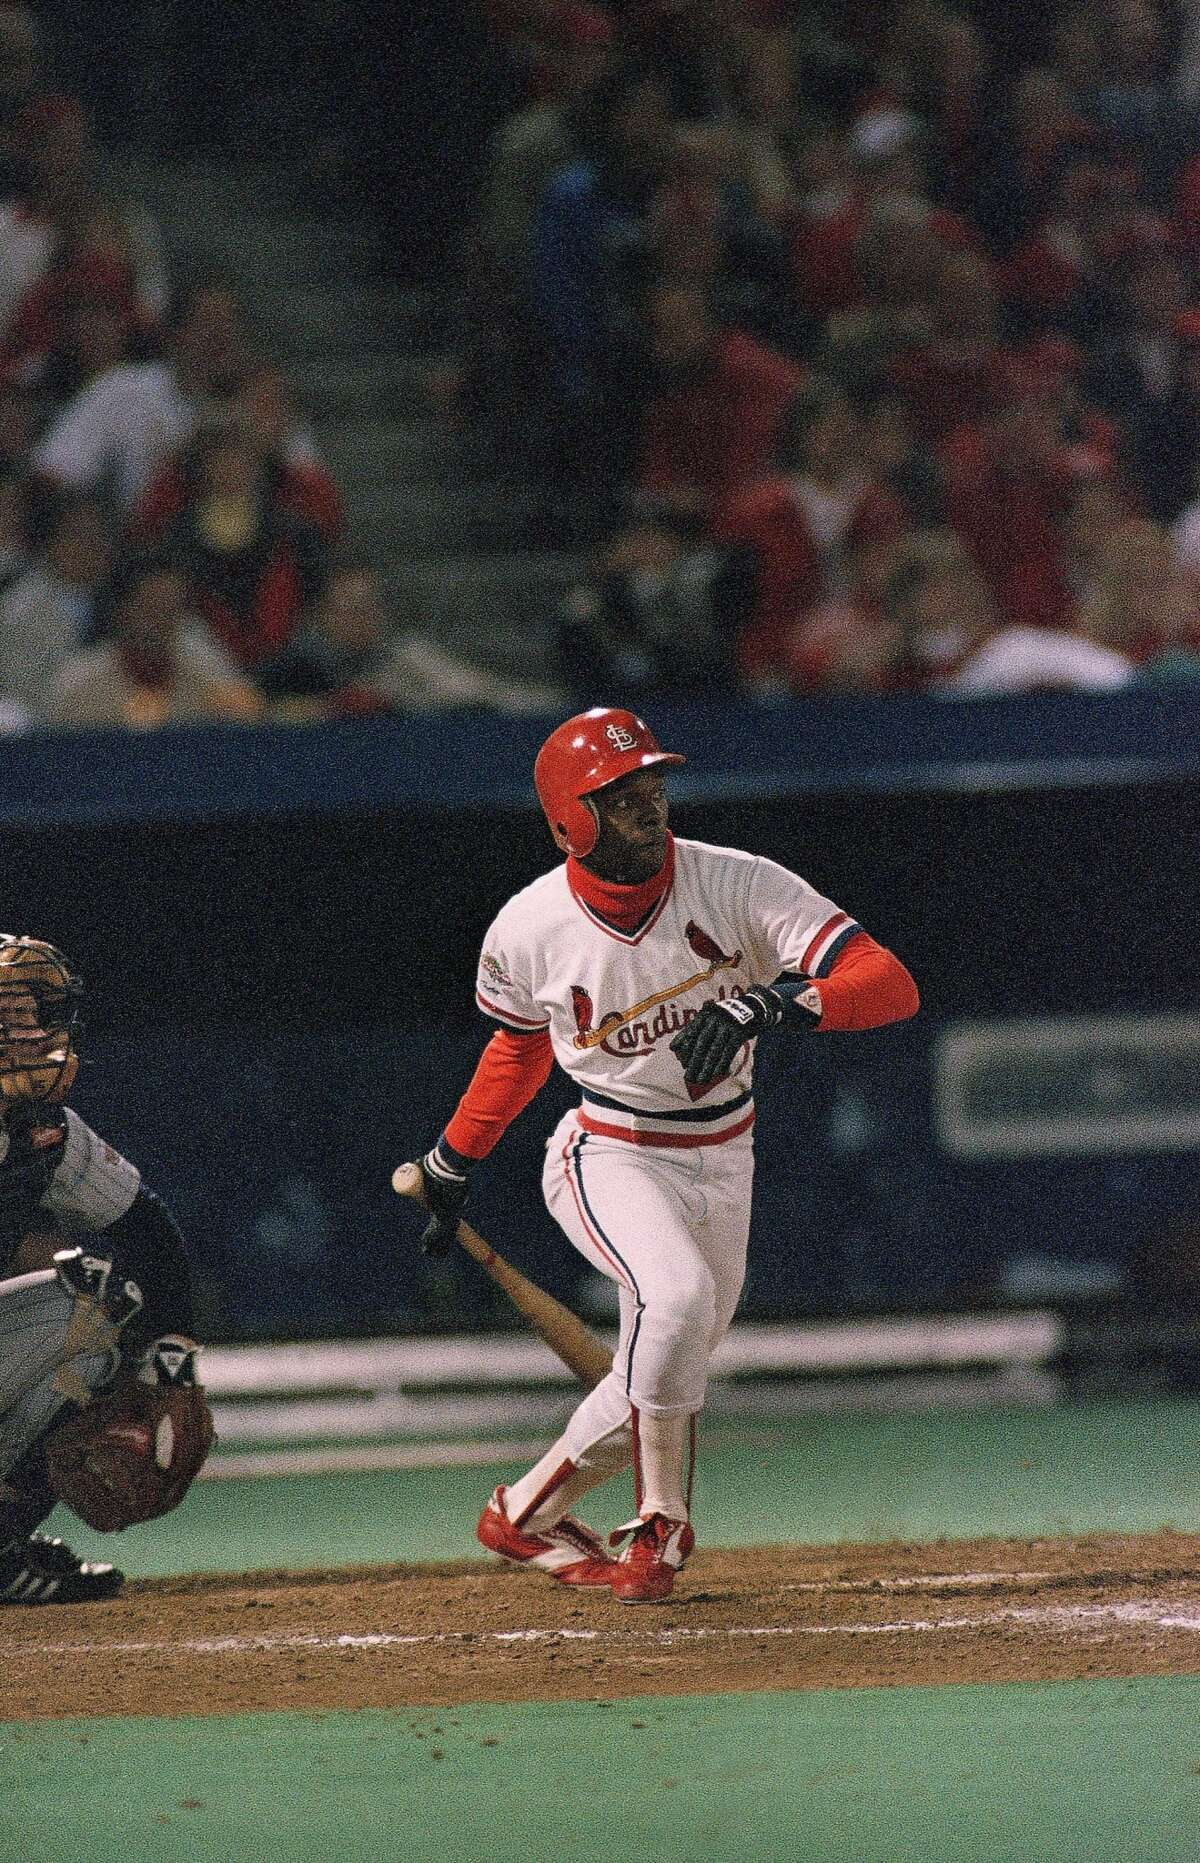 Former St. Louis Cardinals player Curt Ford says he may leave the city after being the victim of a race-related attack at a gas station. (AP Photo/Rob Kozloff)